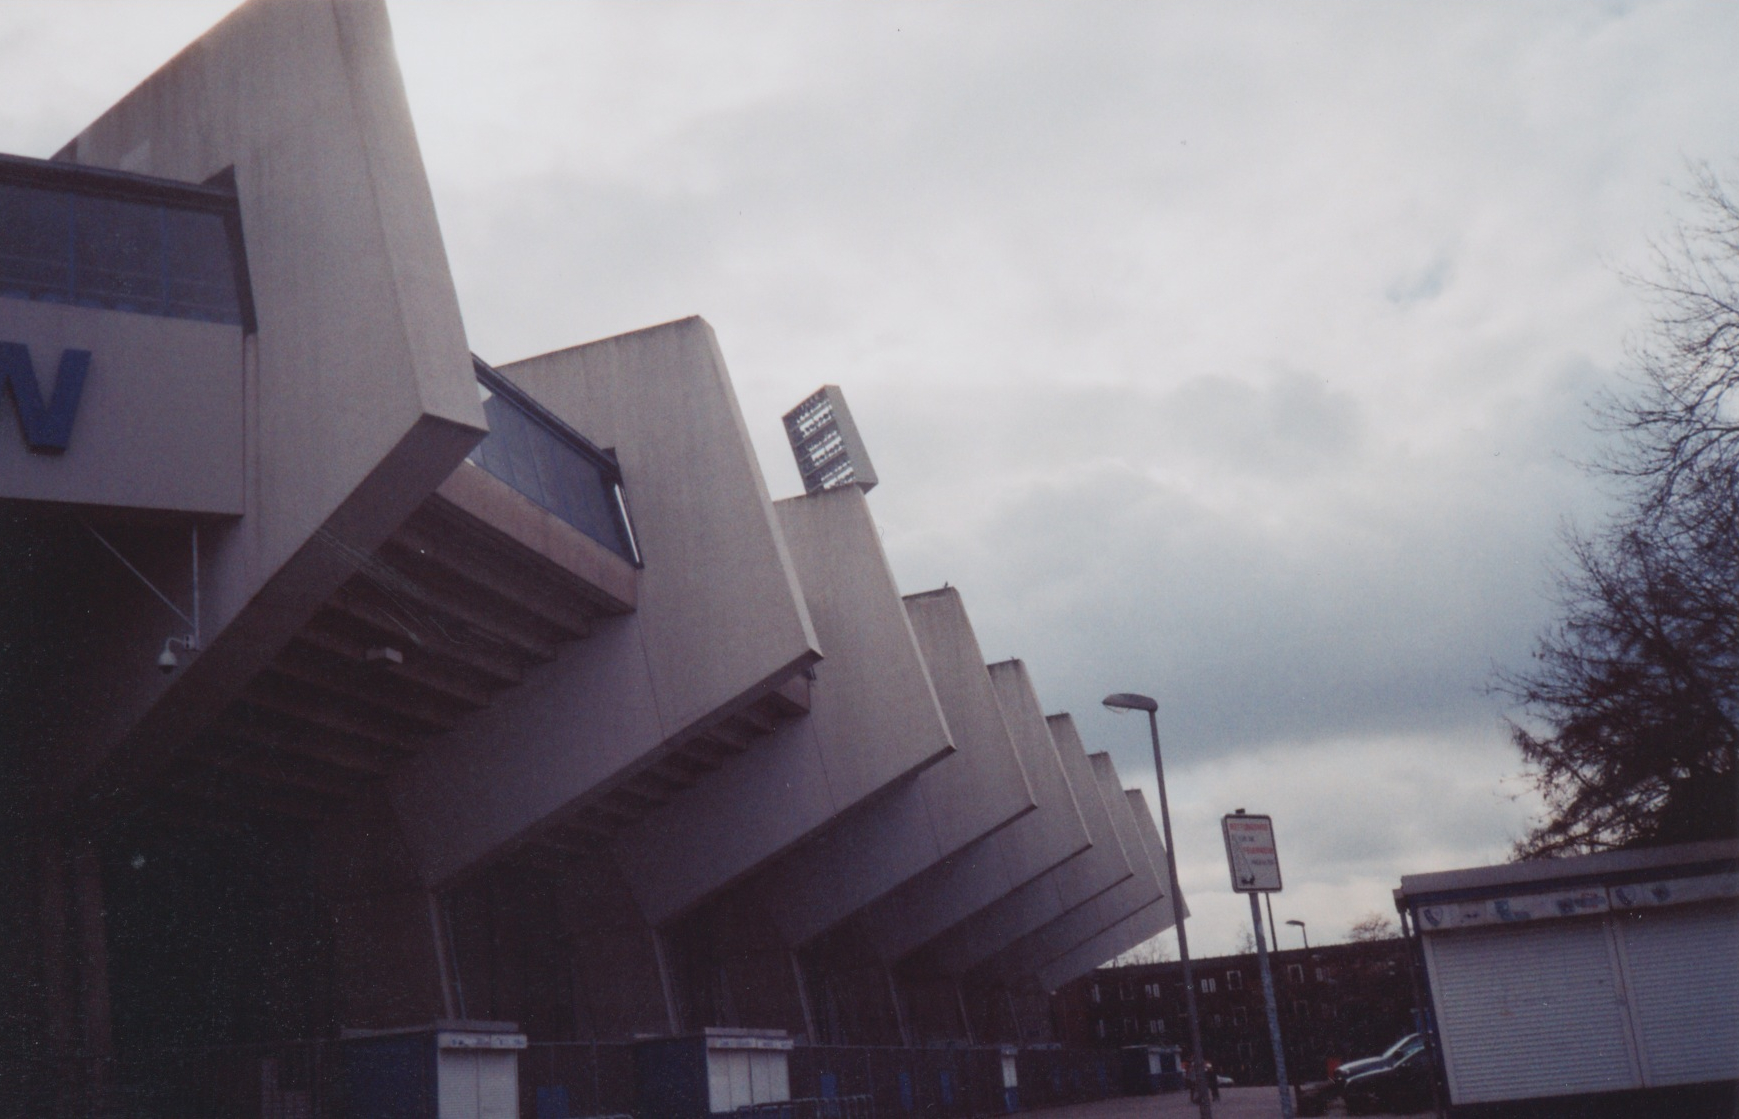 Heading to Dortmund Airport and noticing some floodlights behind some shops, our intrepid taxi driver takes a detour to show us Bochum FCs Ruhrstadion. We do love brutalist concrete architecture, as must the taxi driver.